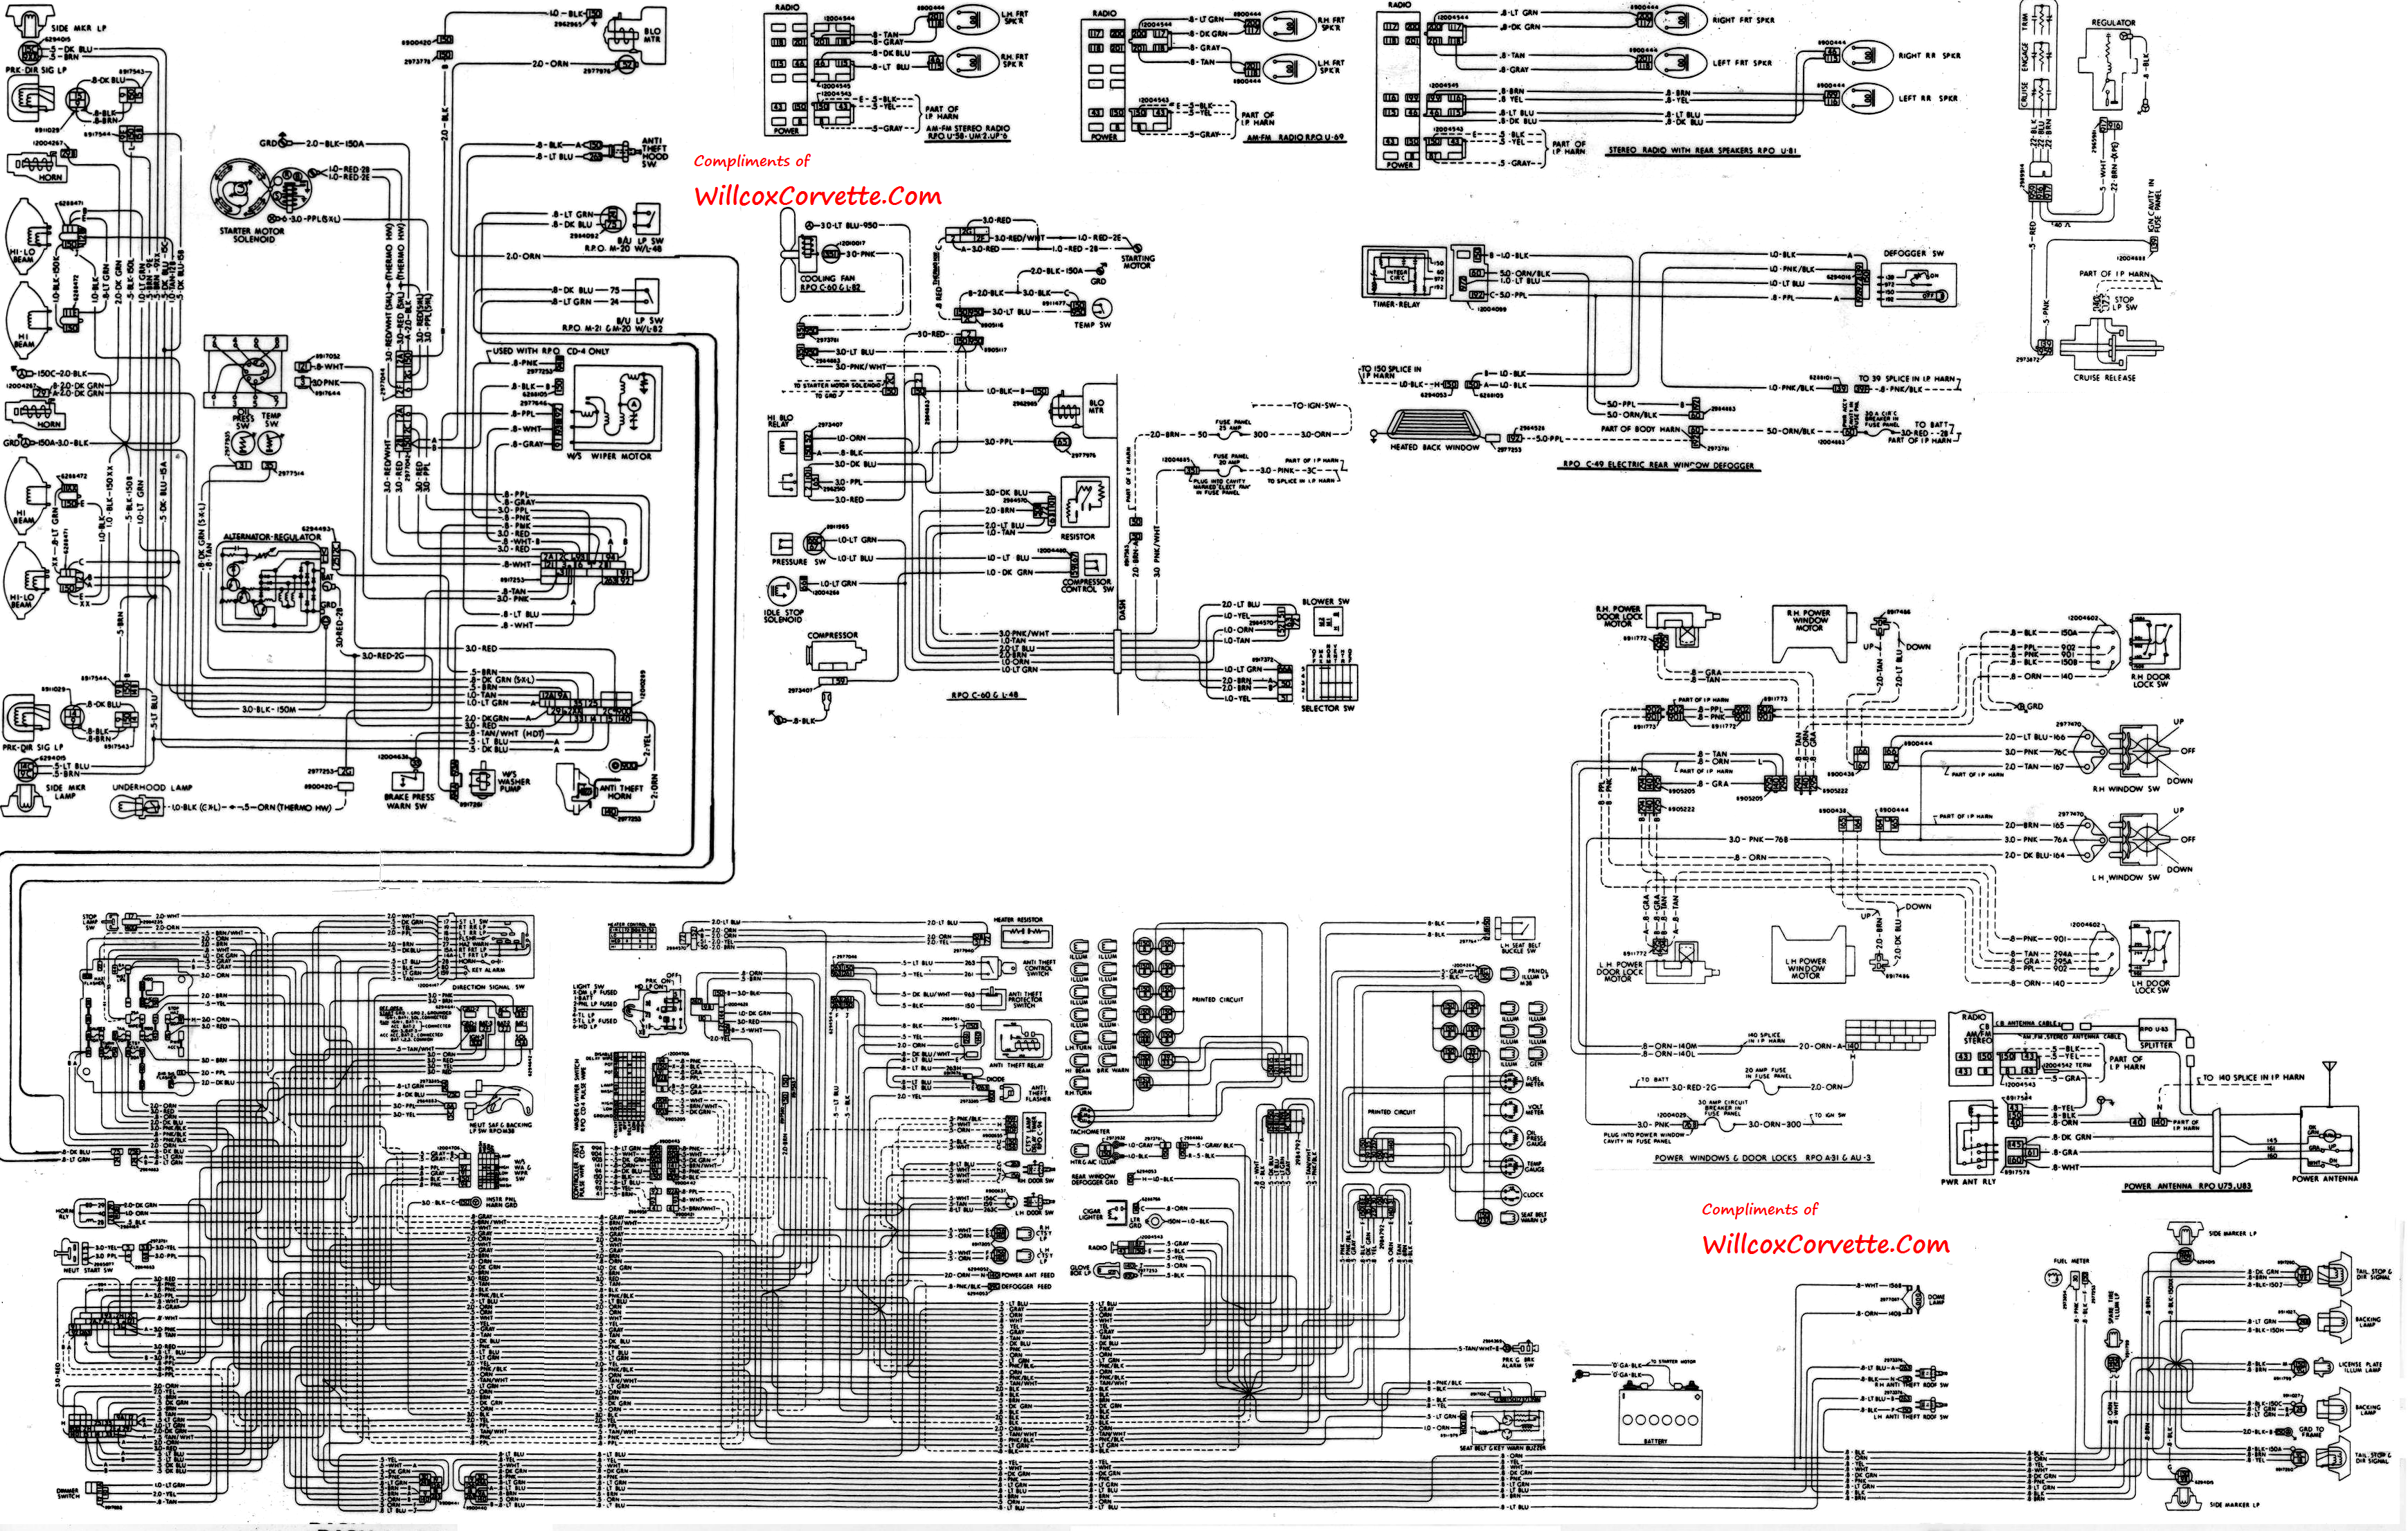 68 Corvette Wiring Schematic - Wiring Diagram Online on 1970 corvette speedometer, 1970 corvette brochure, 1970 corvette radiator, 1970 corvette headlights, 1978 corvette engine diagram, 1975 corvette diagram, 1970 corvette exhaust, 1970 corvette alternator, 1977 corvette engine diagram, 1980 corvette engine diagram, 1970 corvette starter, 1970 corvette oil filter, 1970 corvette transmission, 1986 corvette engine diagram, 1987 corvette engine diagram, 1970 corvette suspension, 1970 corvette air cleaner, 1970 corvette clock, 1970 corvette carburetor, 1970 corvette distributor,